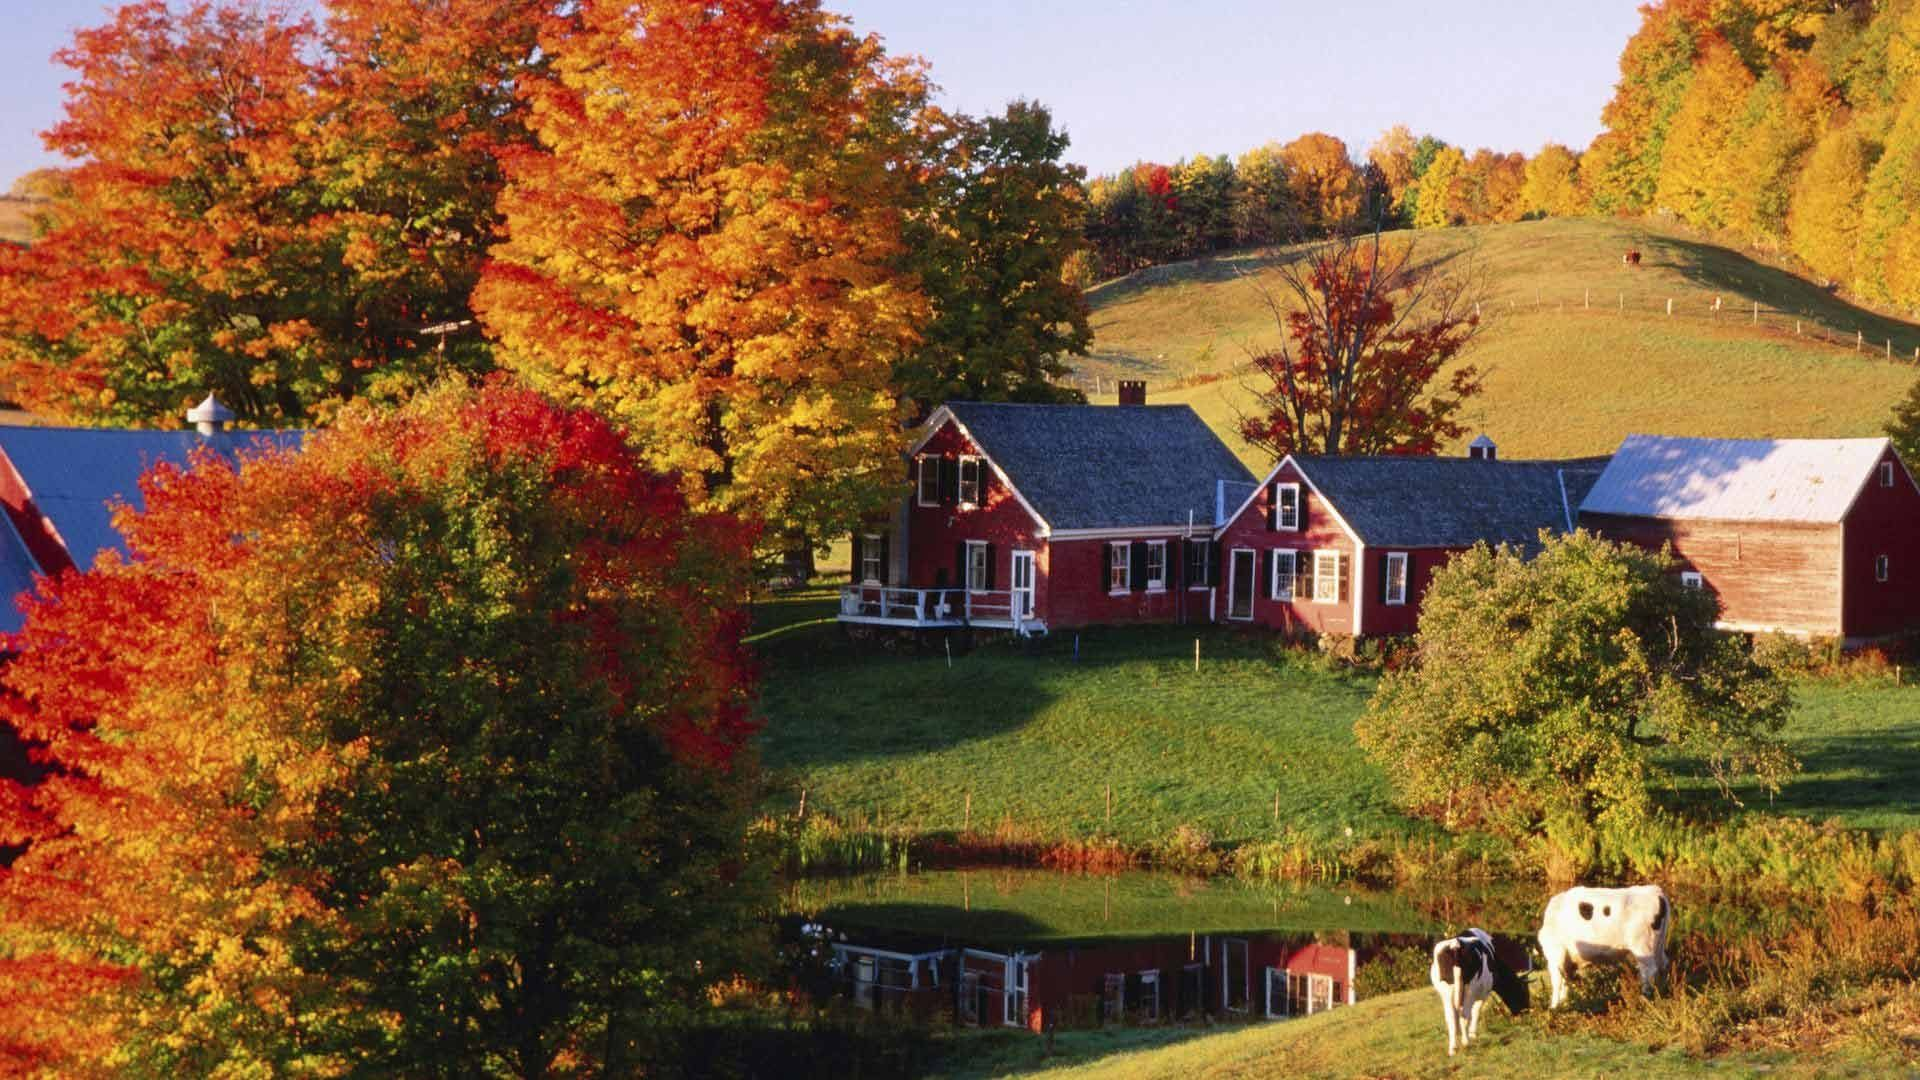 Autumn Pictures For Desktop Backgrounds Posted By John Thompson